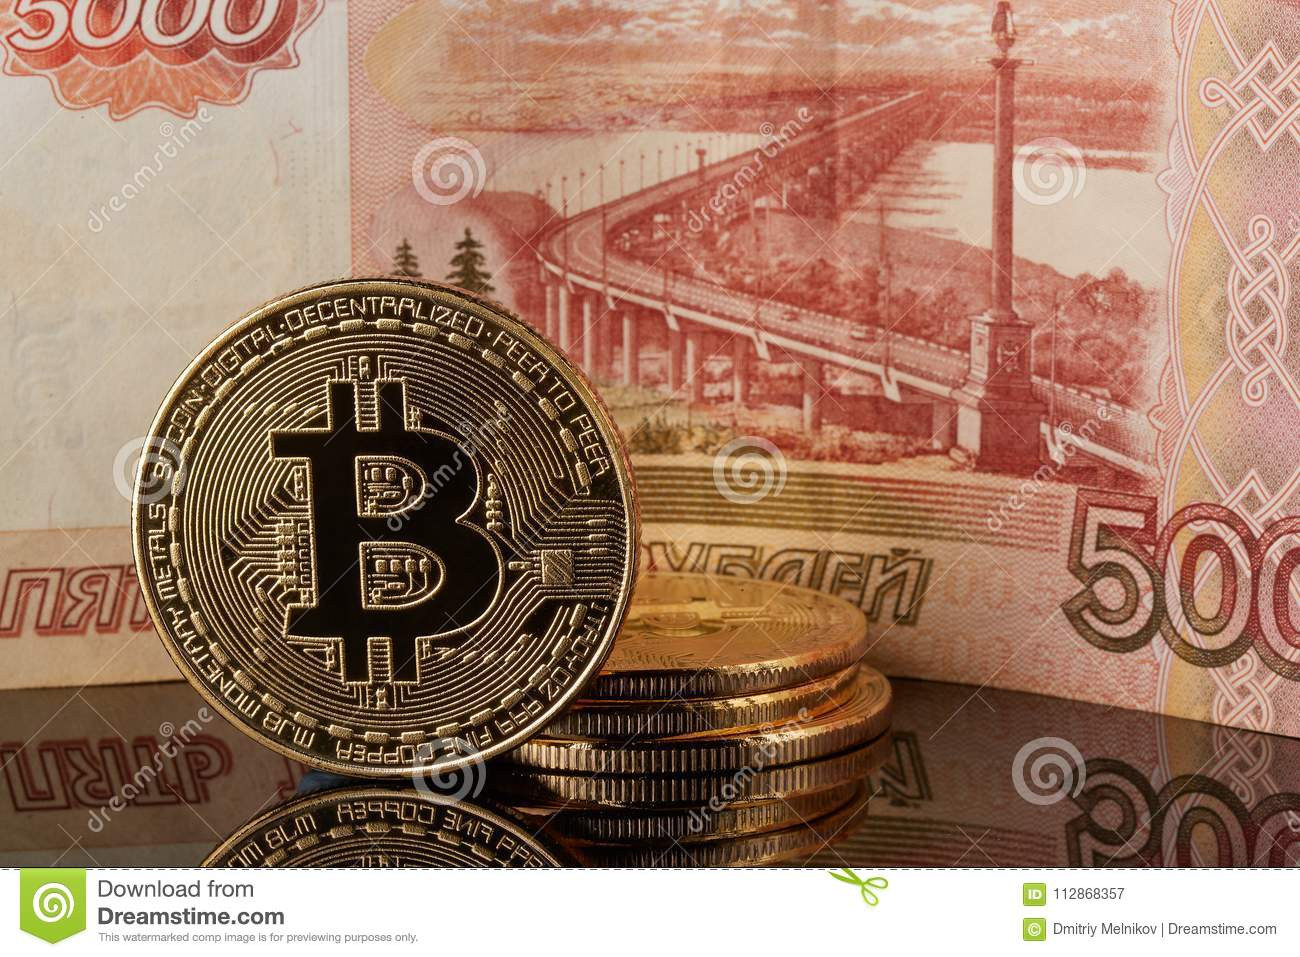 How to exchange Bitcoin for rubles 56